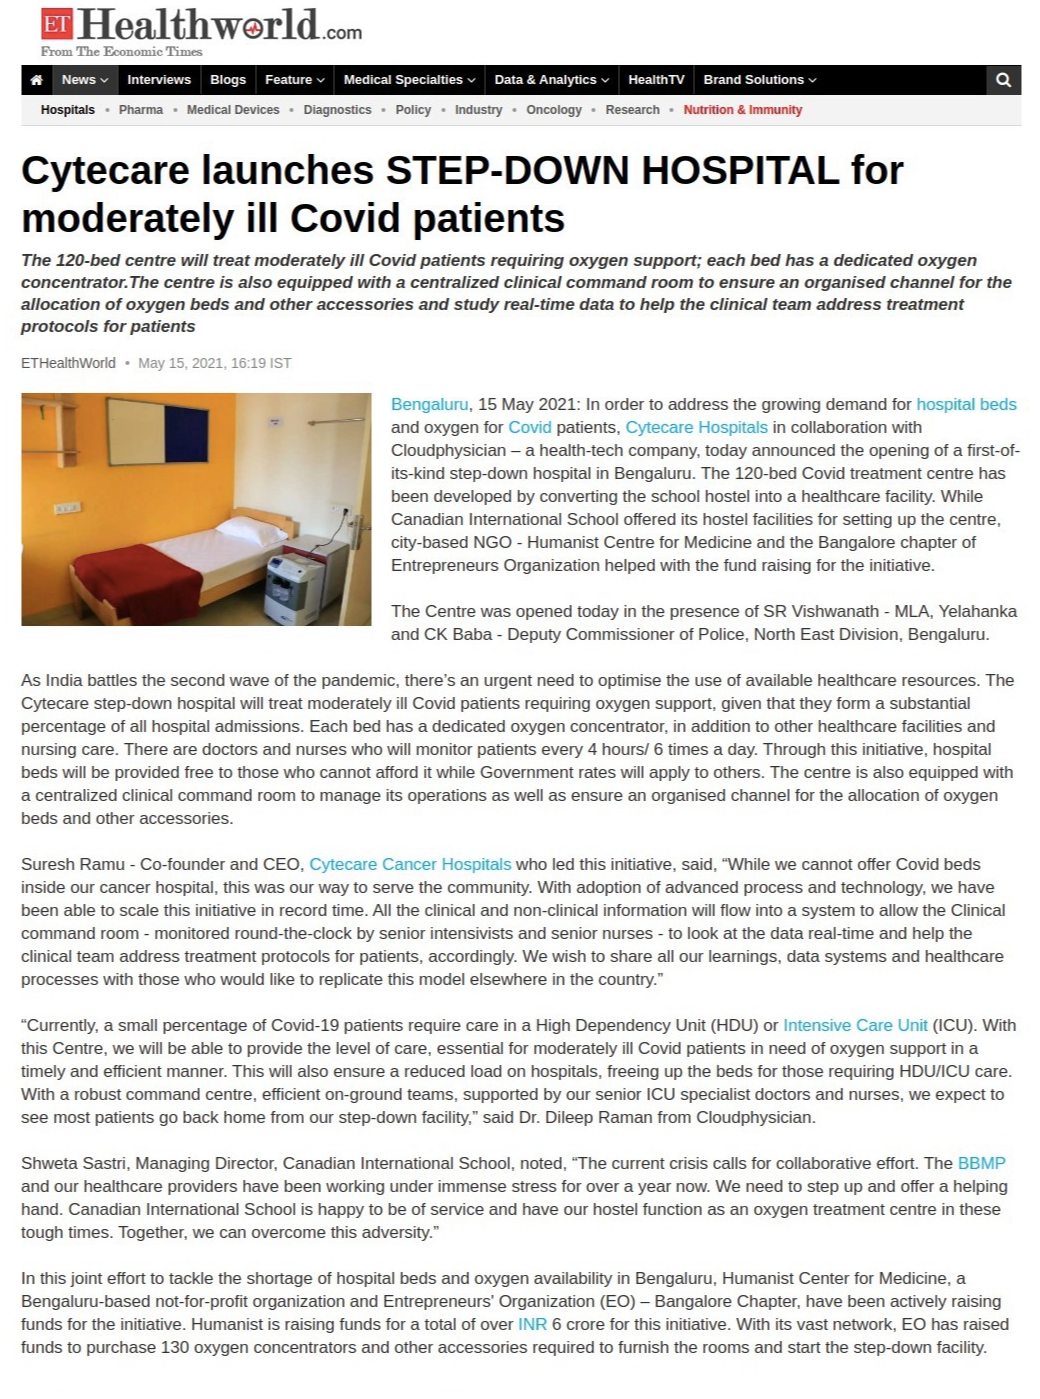 Cytecare launches STEP-DOWN HOSPITAL for moderately ill Covid patients